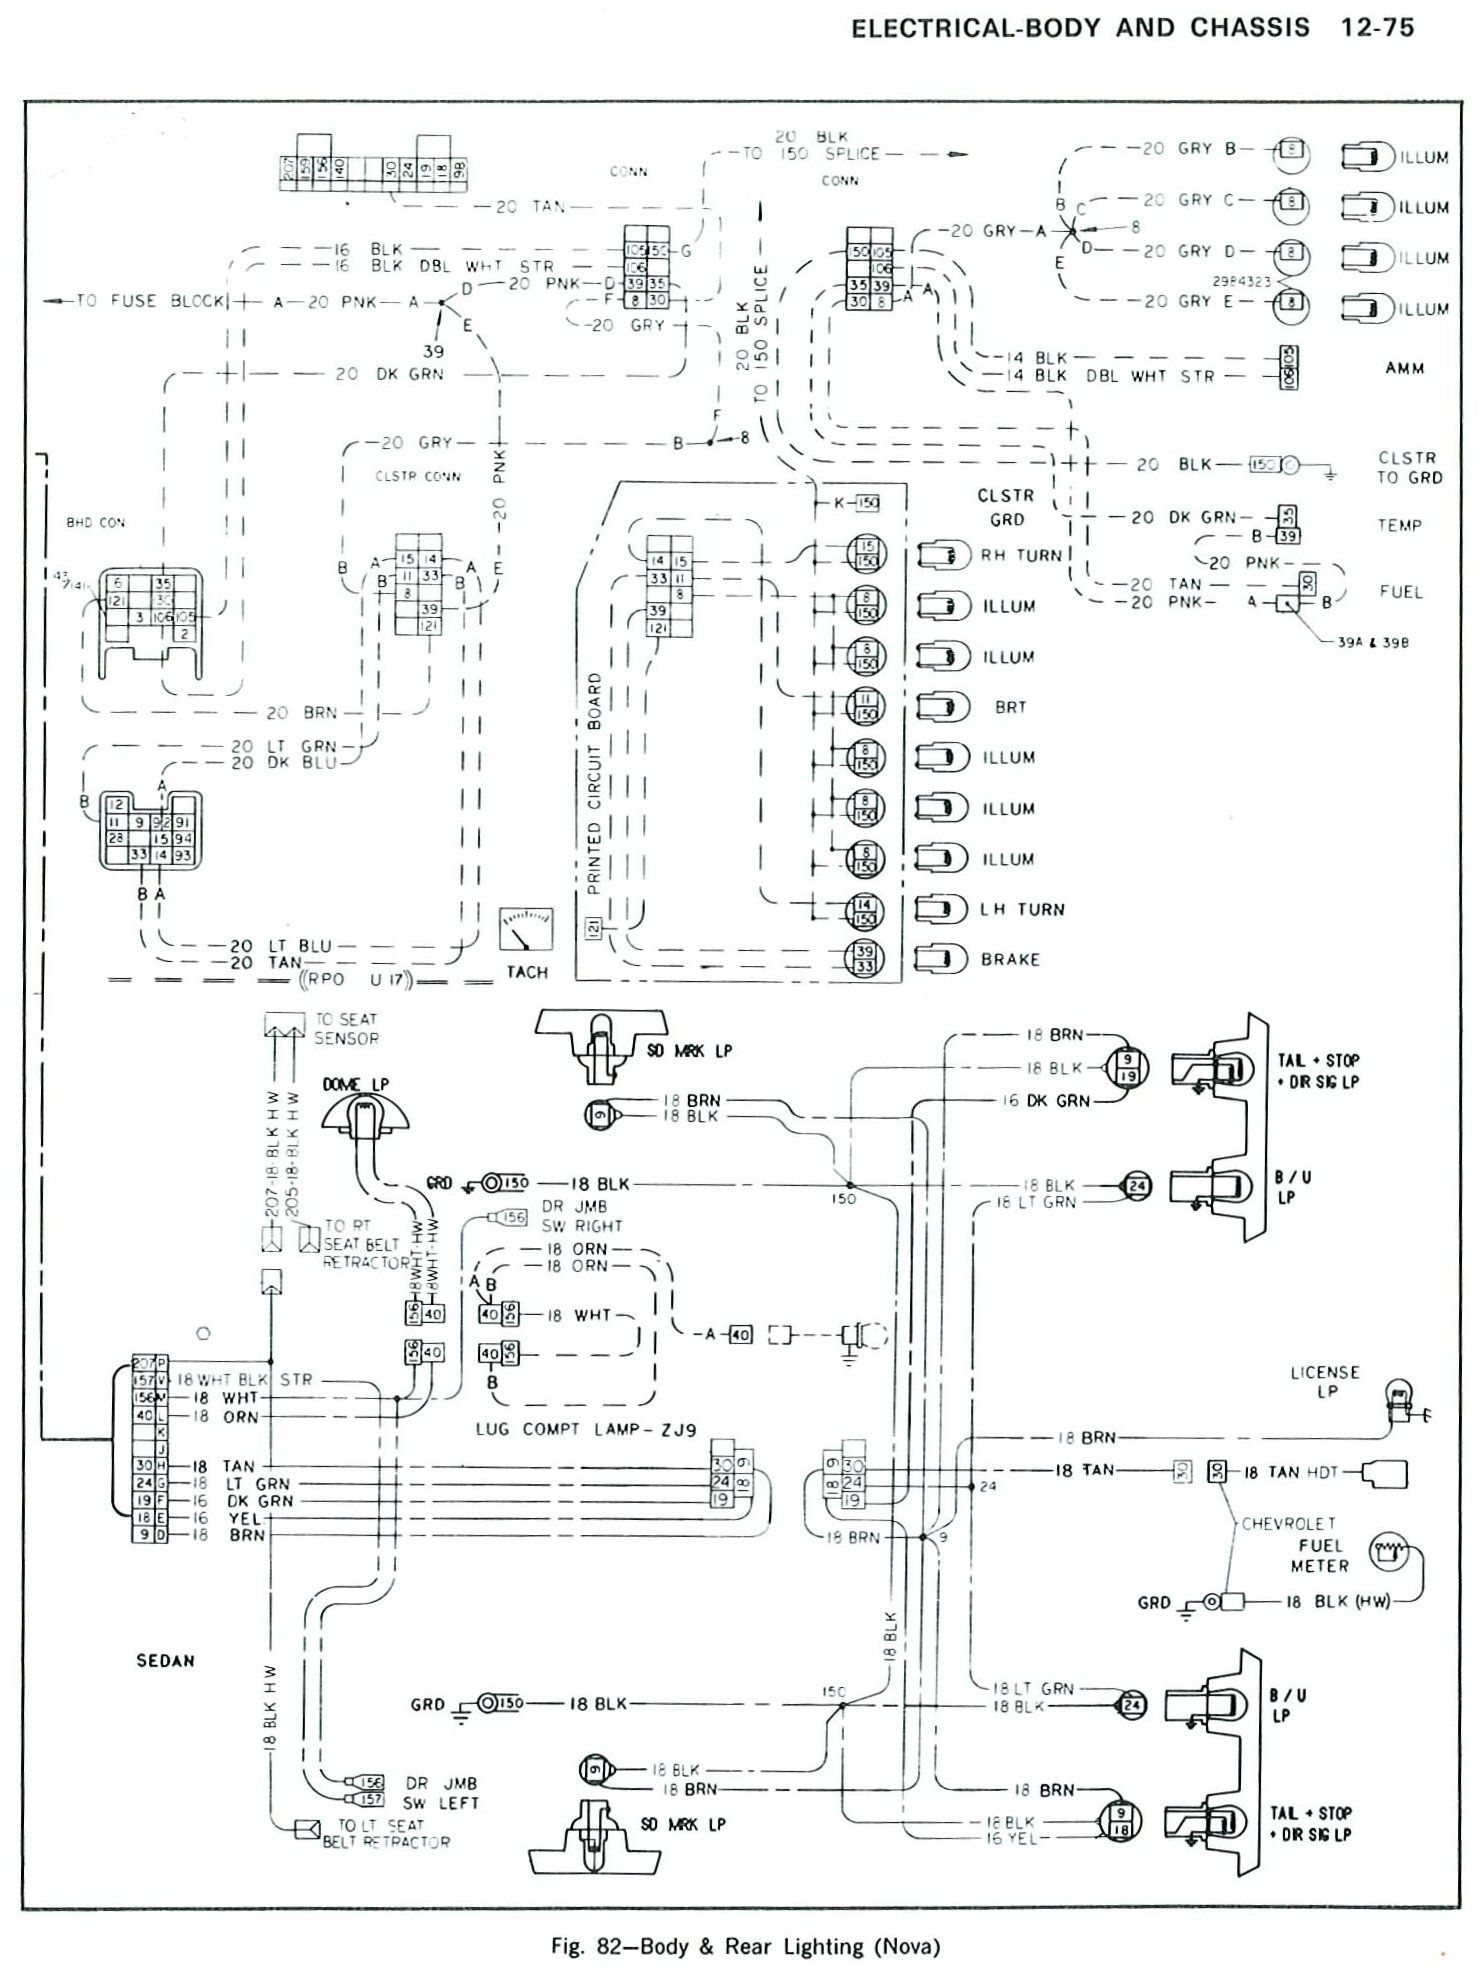 85 Chevy Truck Wiring Diagram | ... looking at the wiring diagram on the